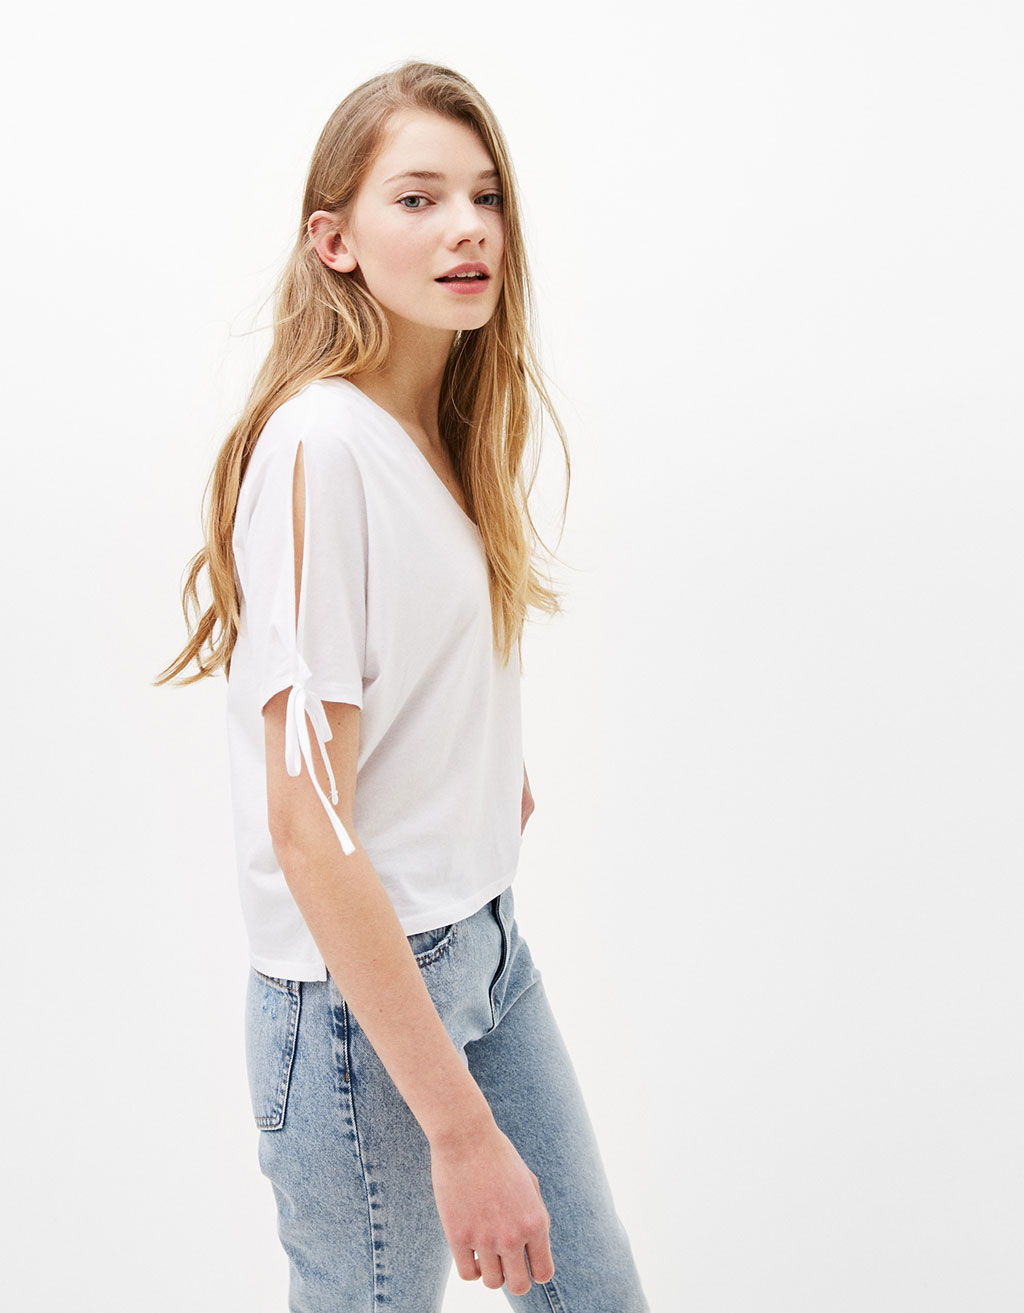 Cropped T-shirt with details on sleeves